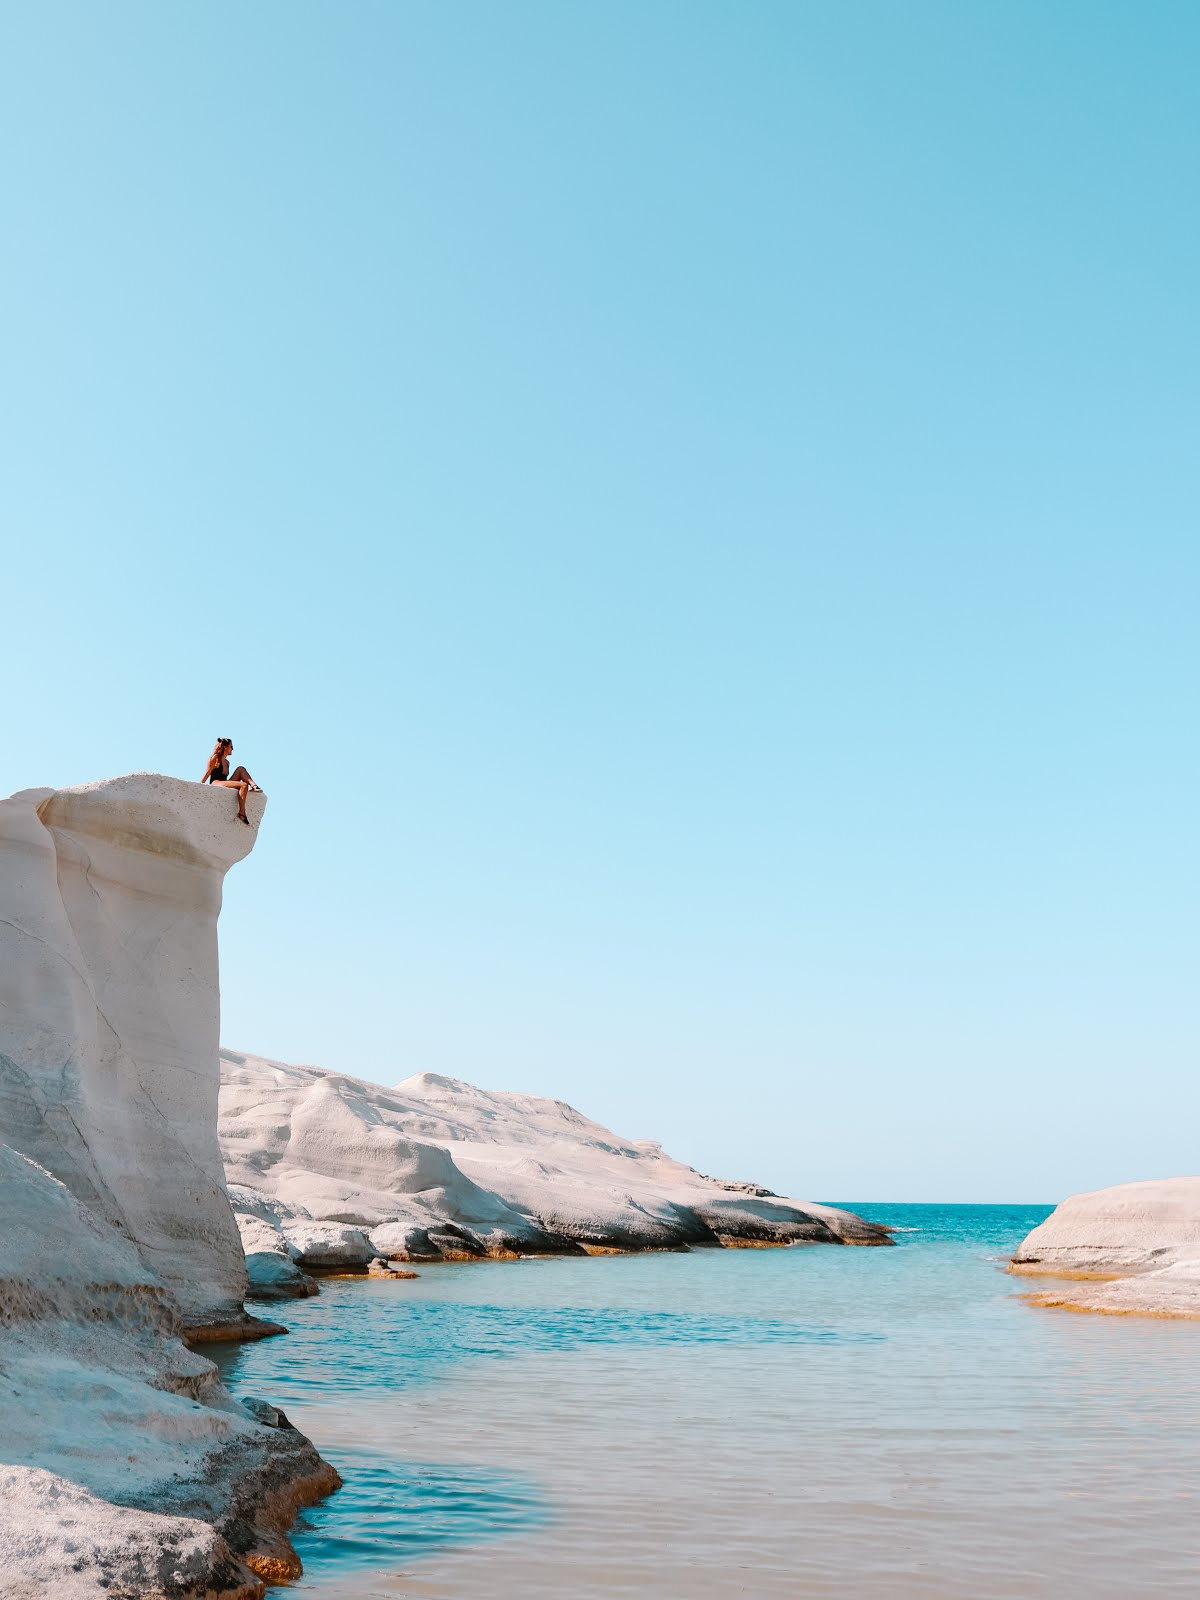 Sarakiniko Beach Cliff in Milos island, Greece